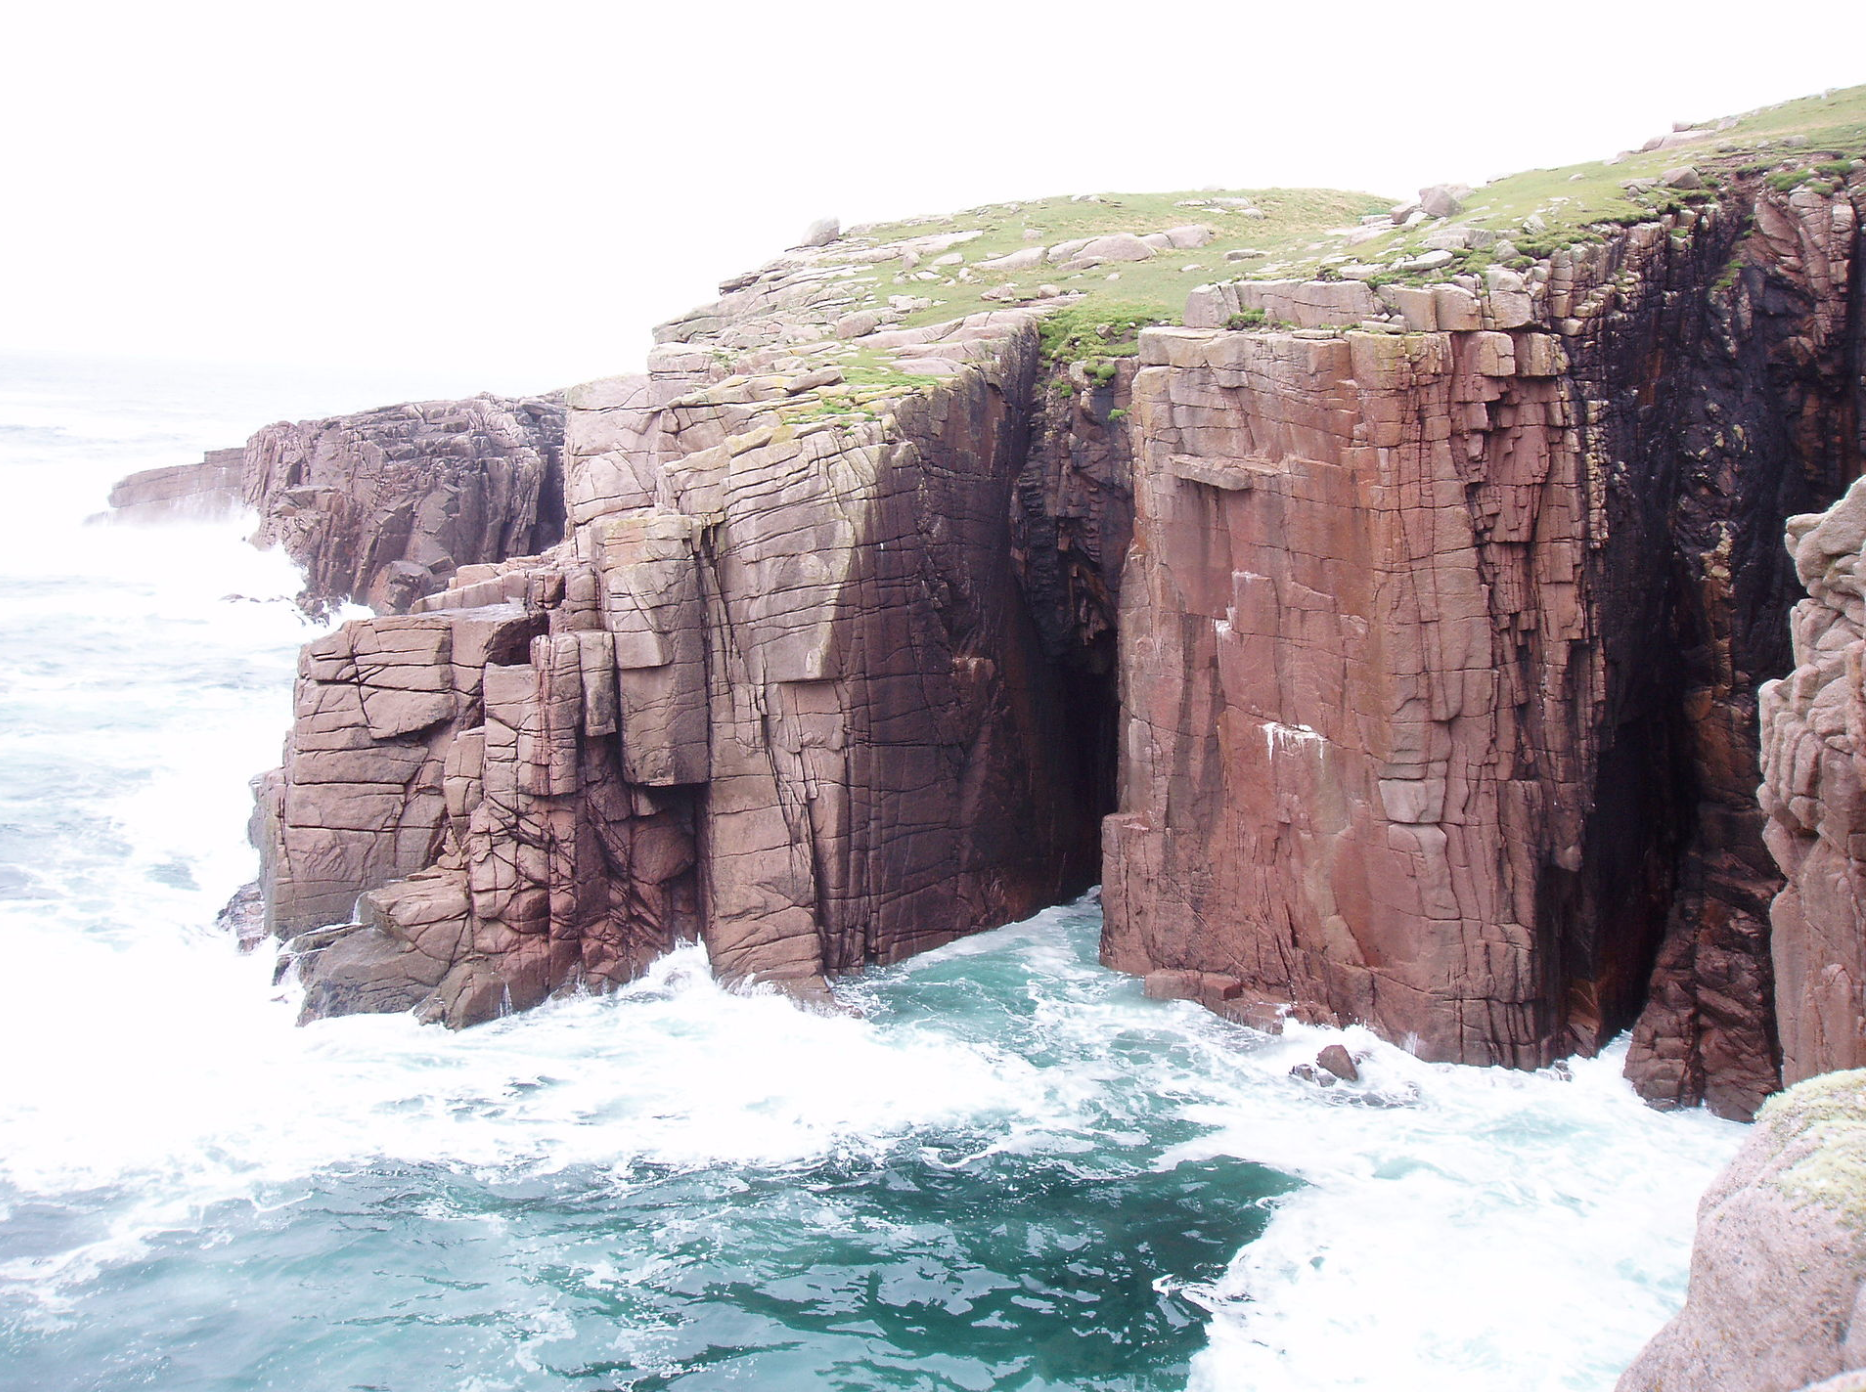 Gola sea-cliffs